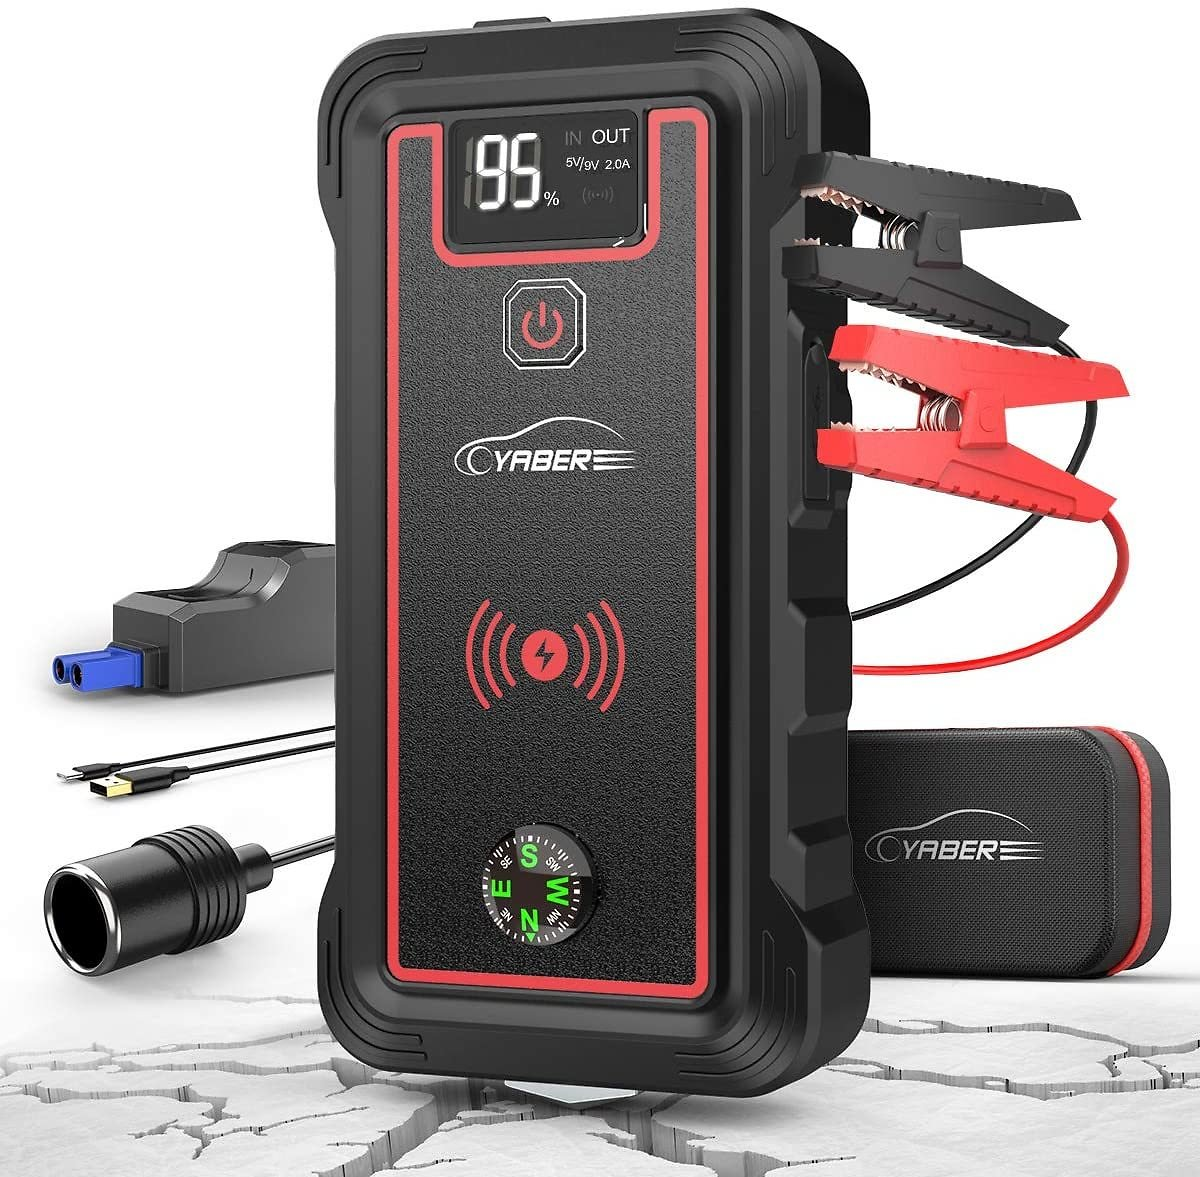 YABER Car Jump Starter, 2500A Peak 23800mAh Car Battery Jump Starter(All Gas or 8.0L Diesel) Portable Wireless Charger with LED Flashlight, EC5 Cigarette Lighter, Safety Hammer, LCD Screen